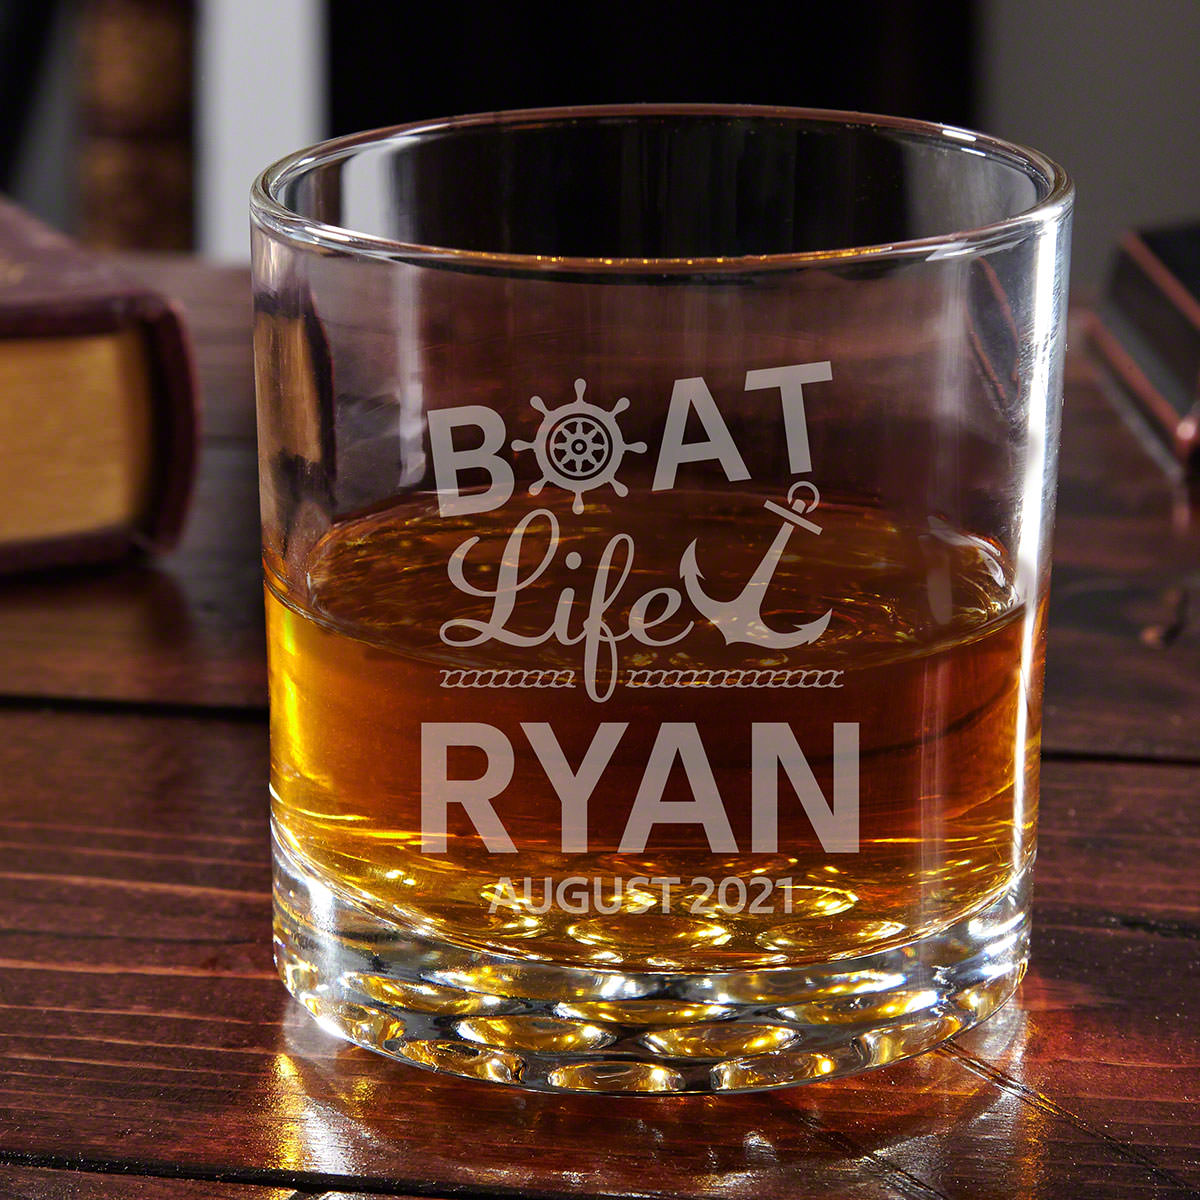 Though boat captains are often thought of as rum drinkers, you stand out with your personalized whiskey glass. As the captain of your own ship you drink what you damn well please! Make this glass yours with two lines of text to make sure everyone knows th #best